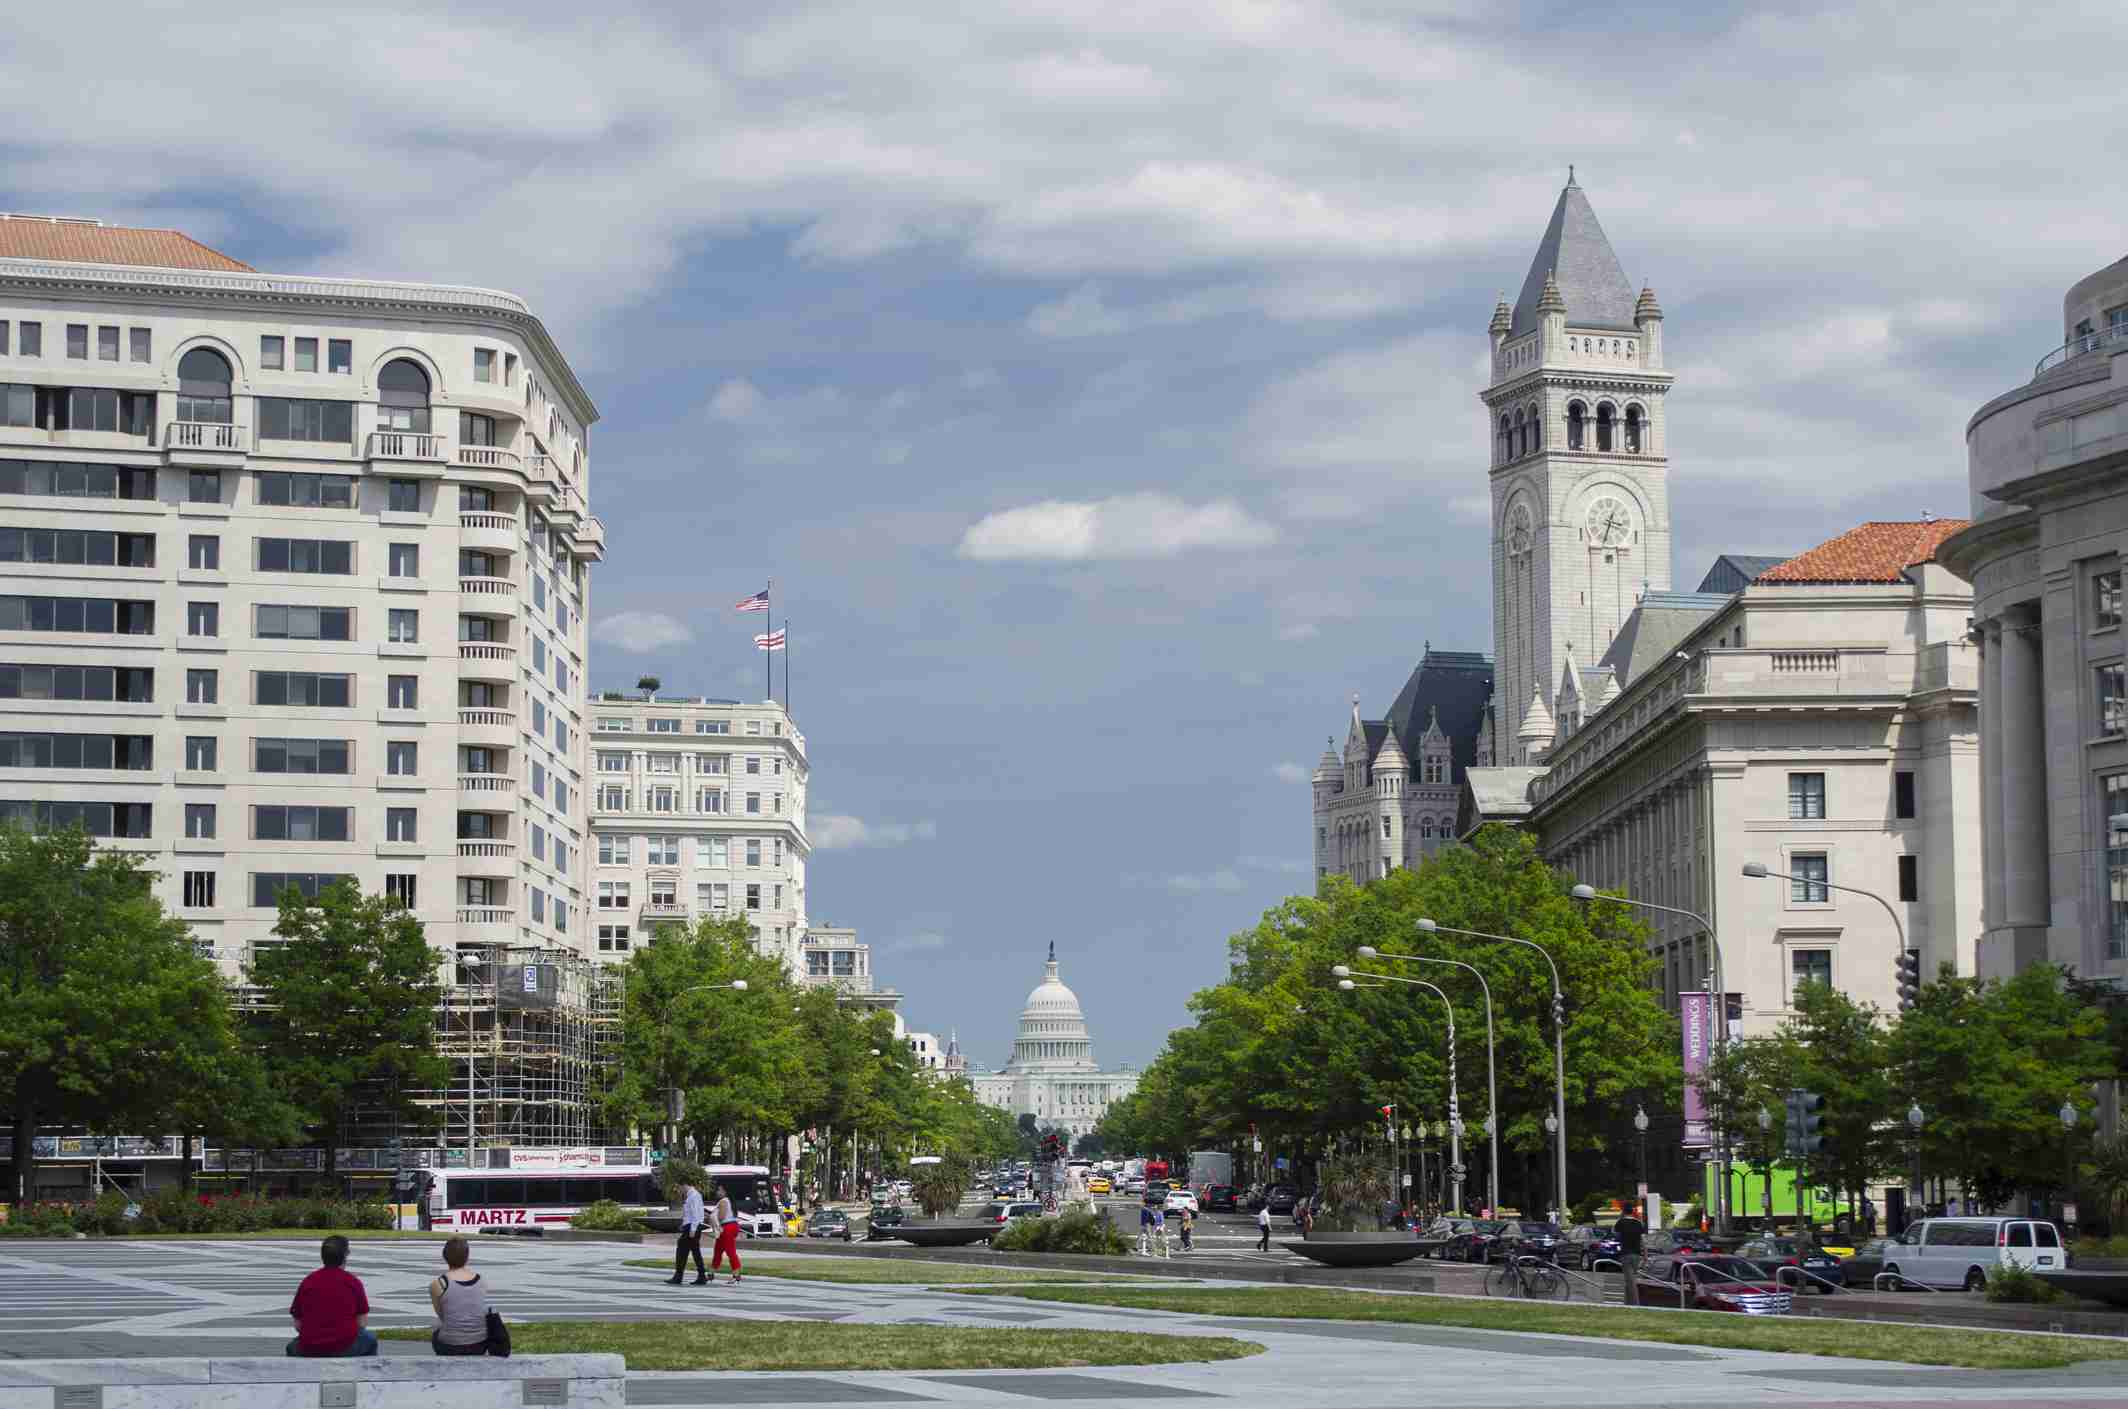 Pennsylvania Avenue view from Pershing Park to Capitol Building